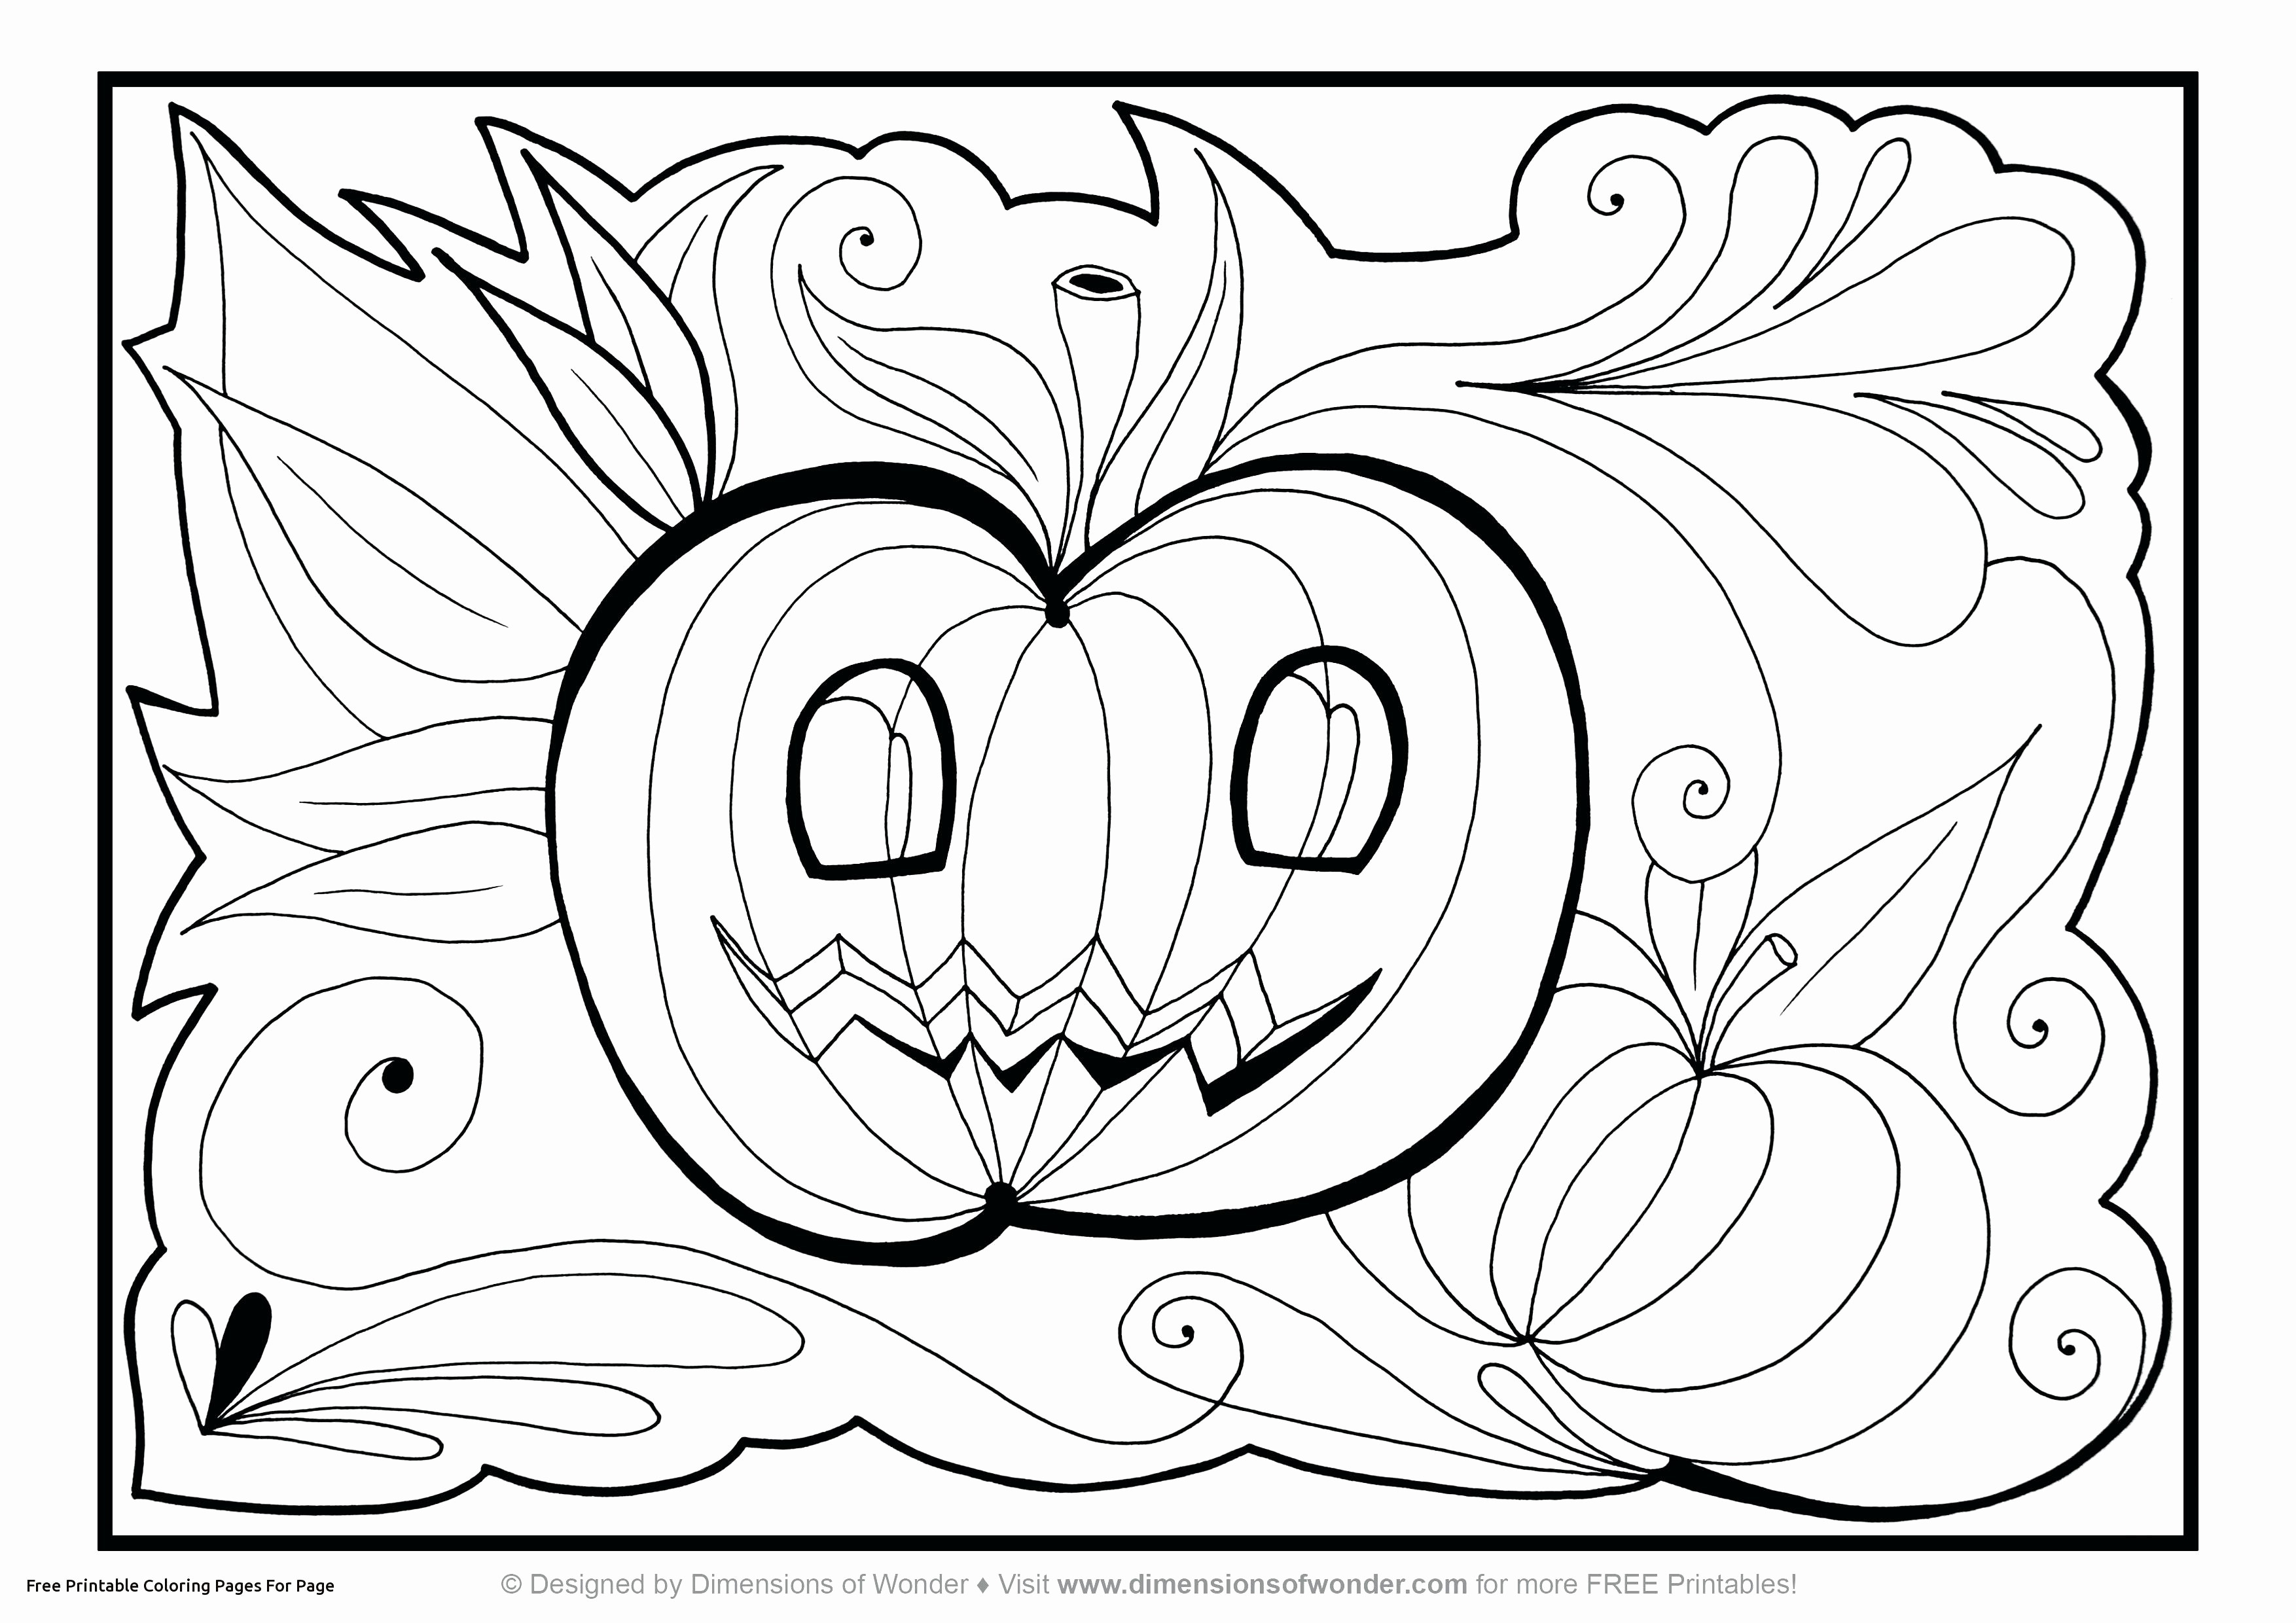 Feathers Coloring Pages  Printable 11e - Free For Children